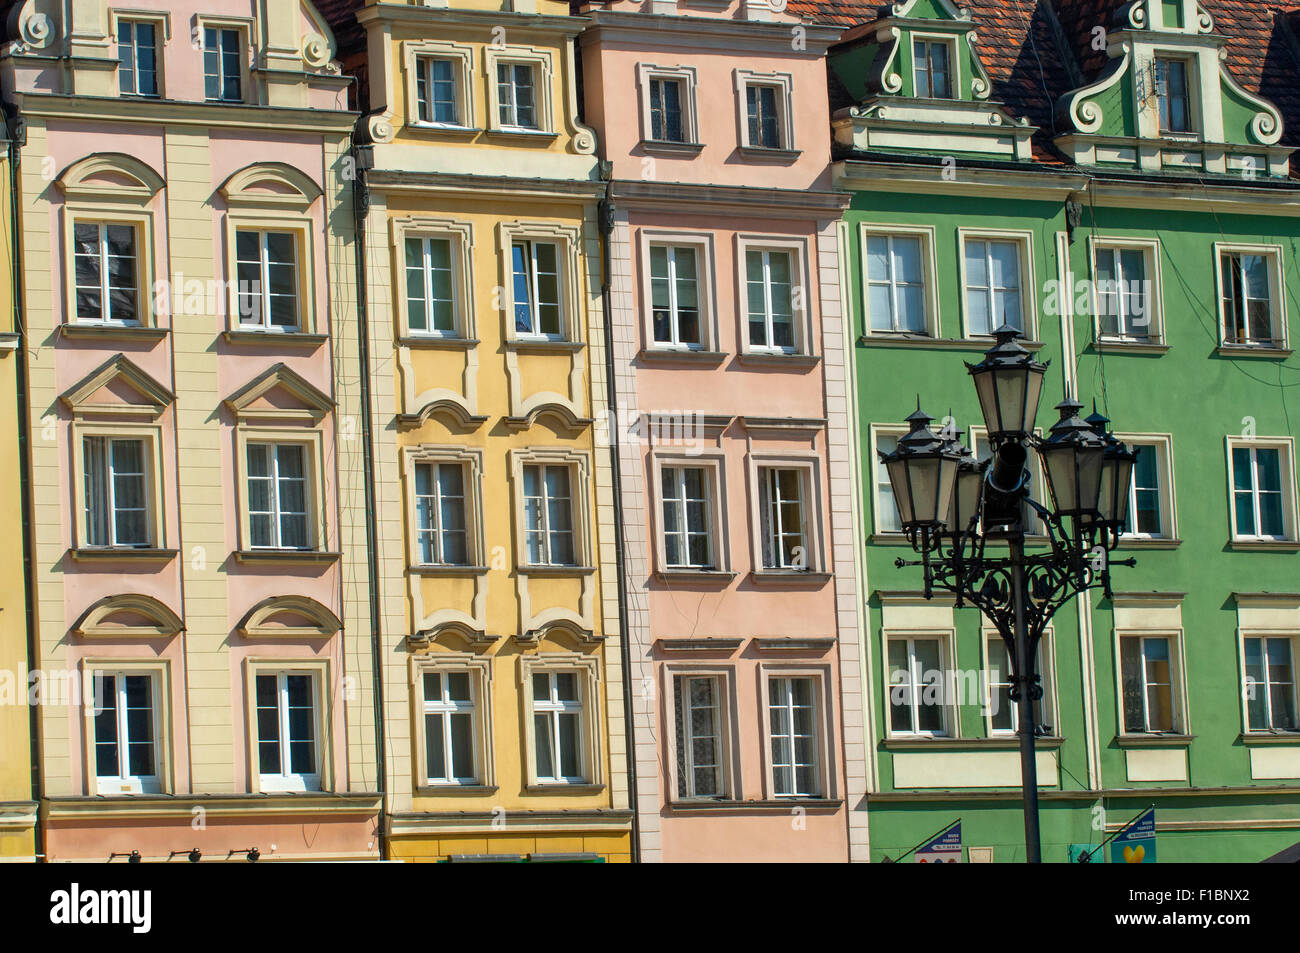 Houses dating from the 13th century in the medieval market square of the Rynek in Wroclaw, Poland. Stock Photo